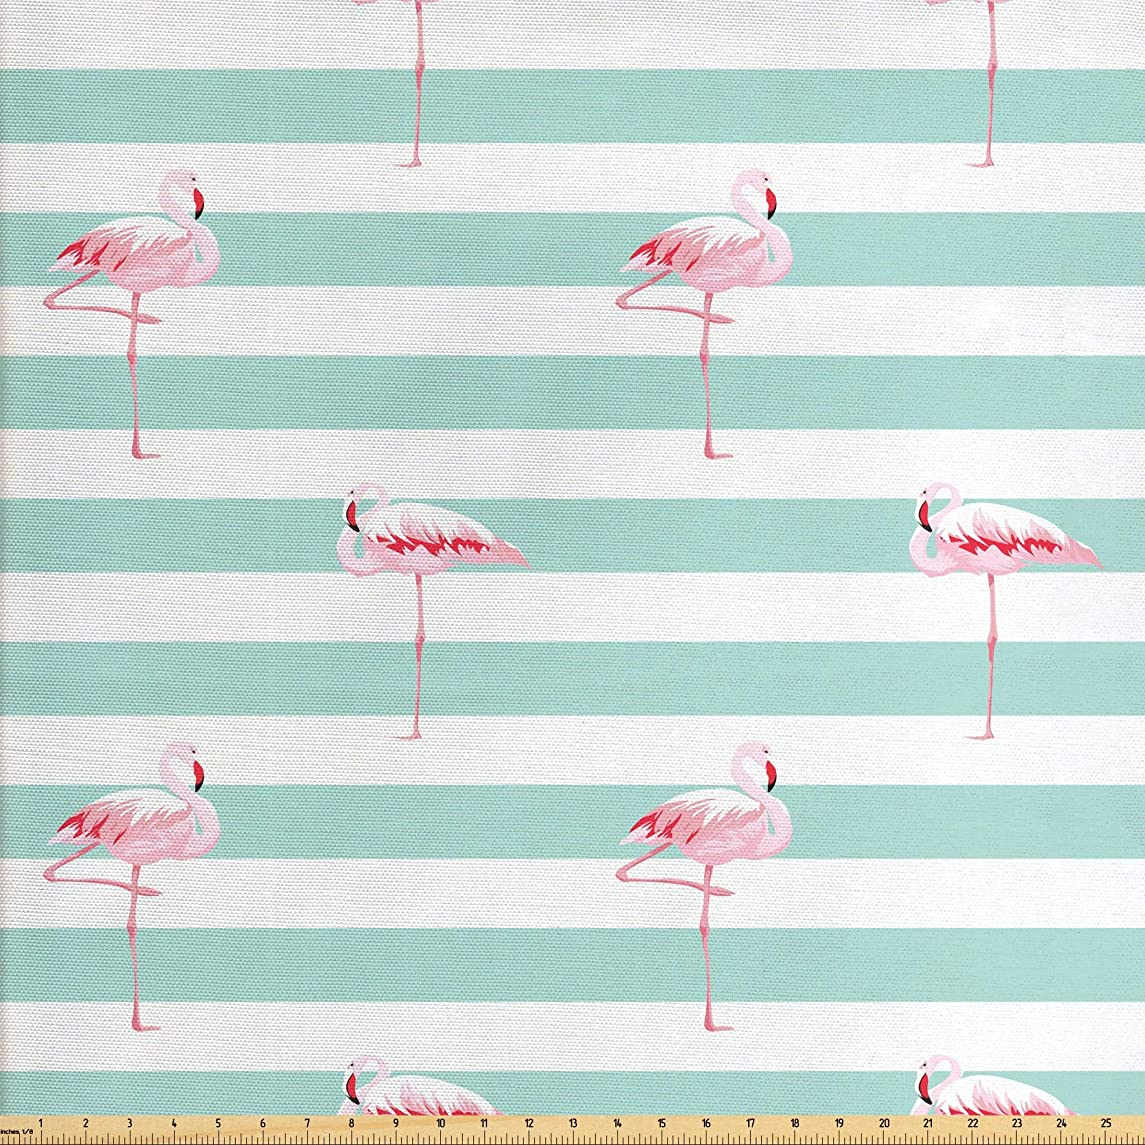 Lunarable Modern Fabric by The Yard, Pink Flamingo Birds on Horizontal Striped Bands Background Love Tropical Graphic, Decorative Fabric for Upholstery and Home Accents, 2 Yards, Seafoam White